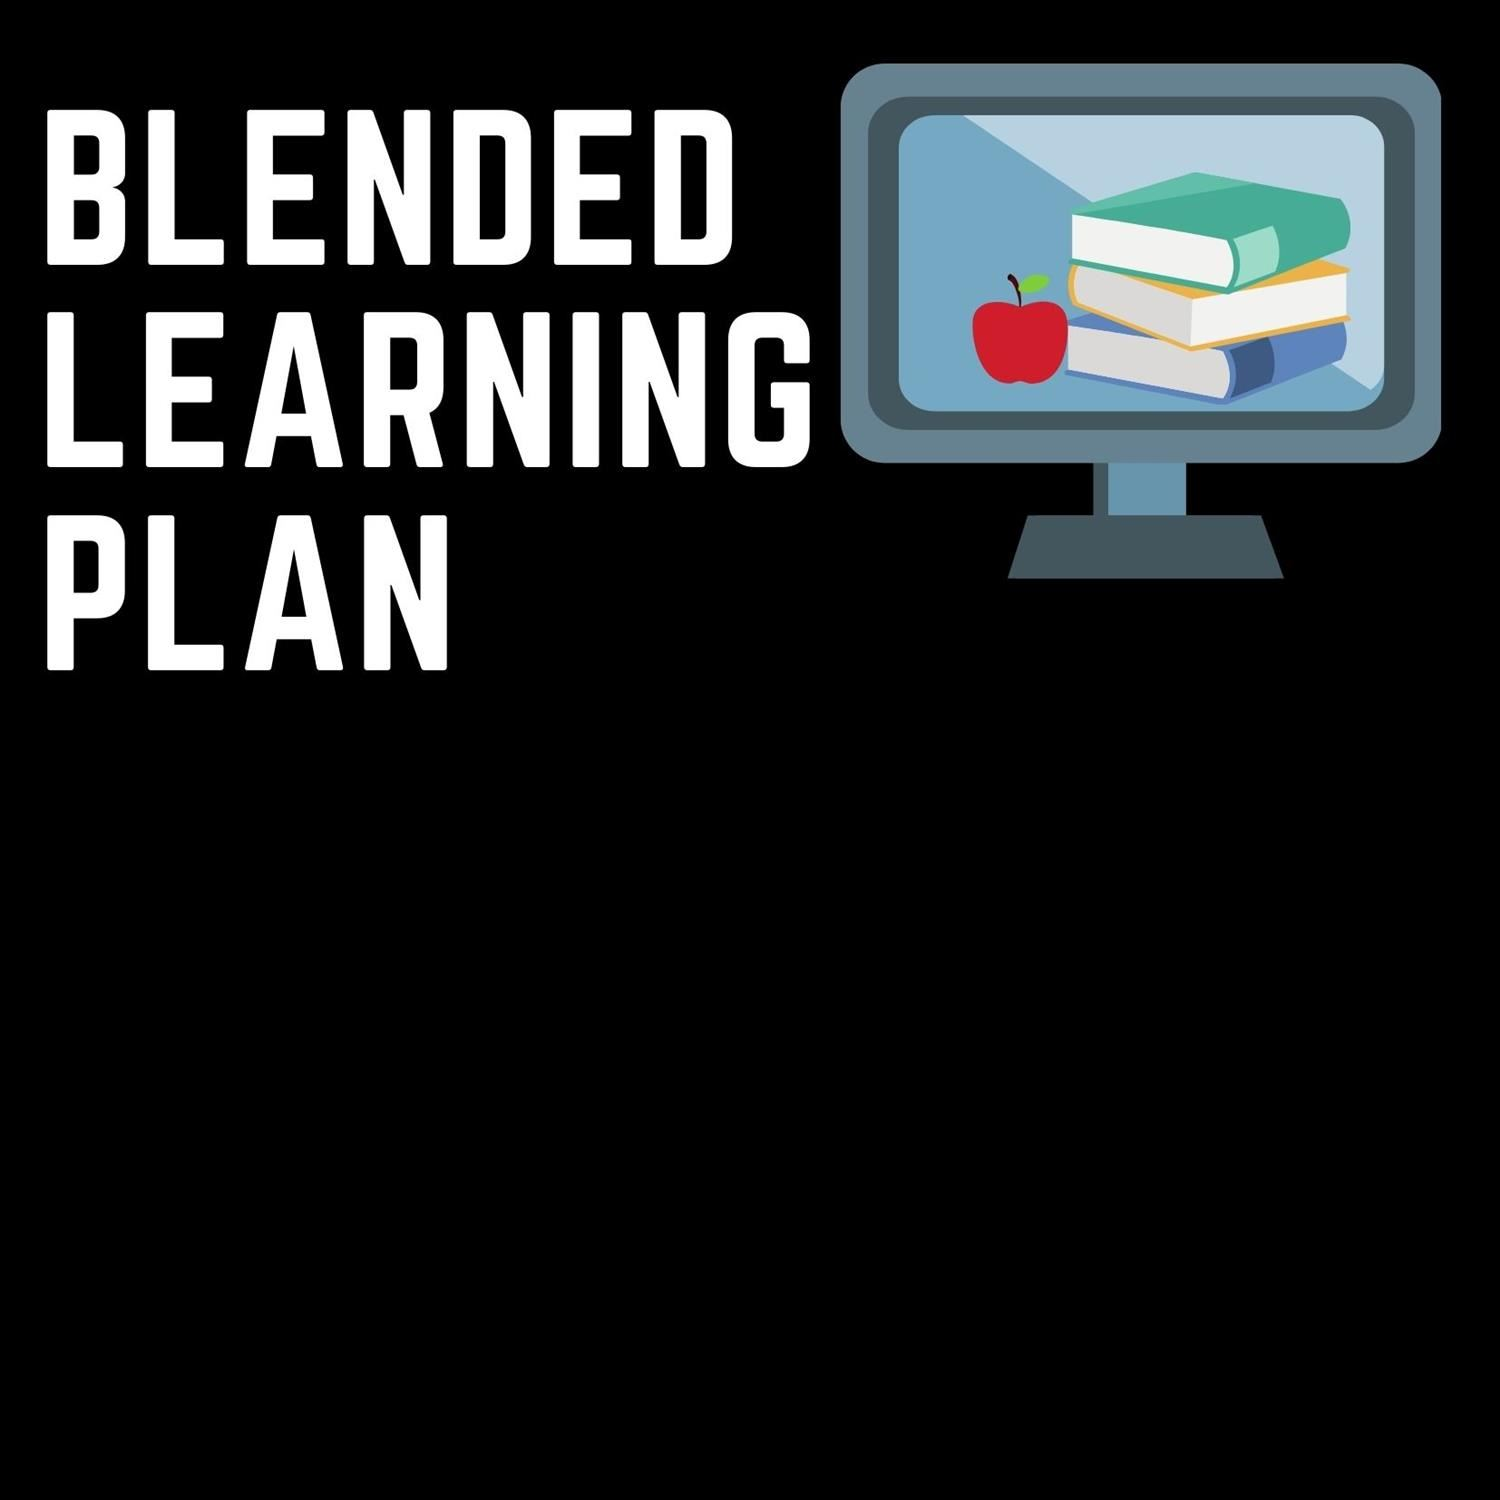 Blended Learning Plans